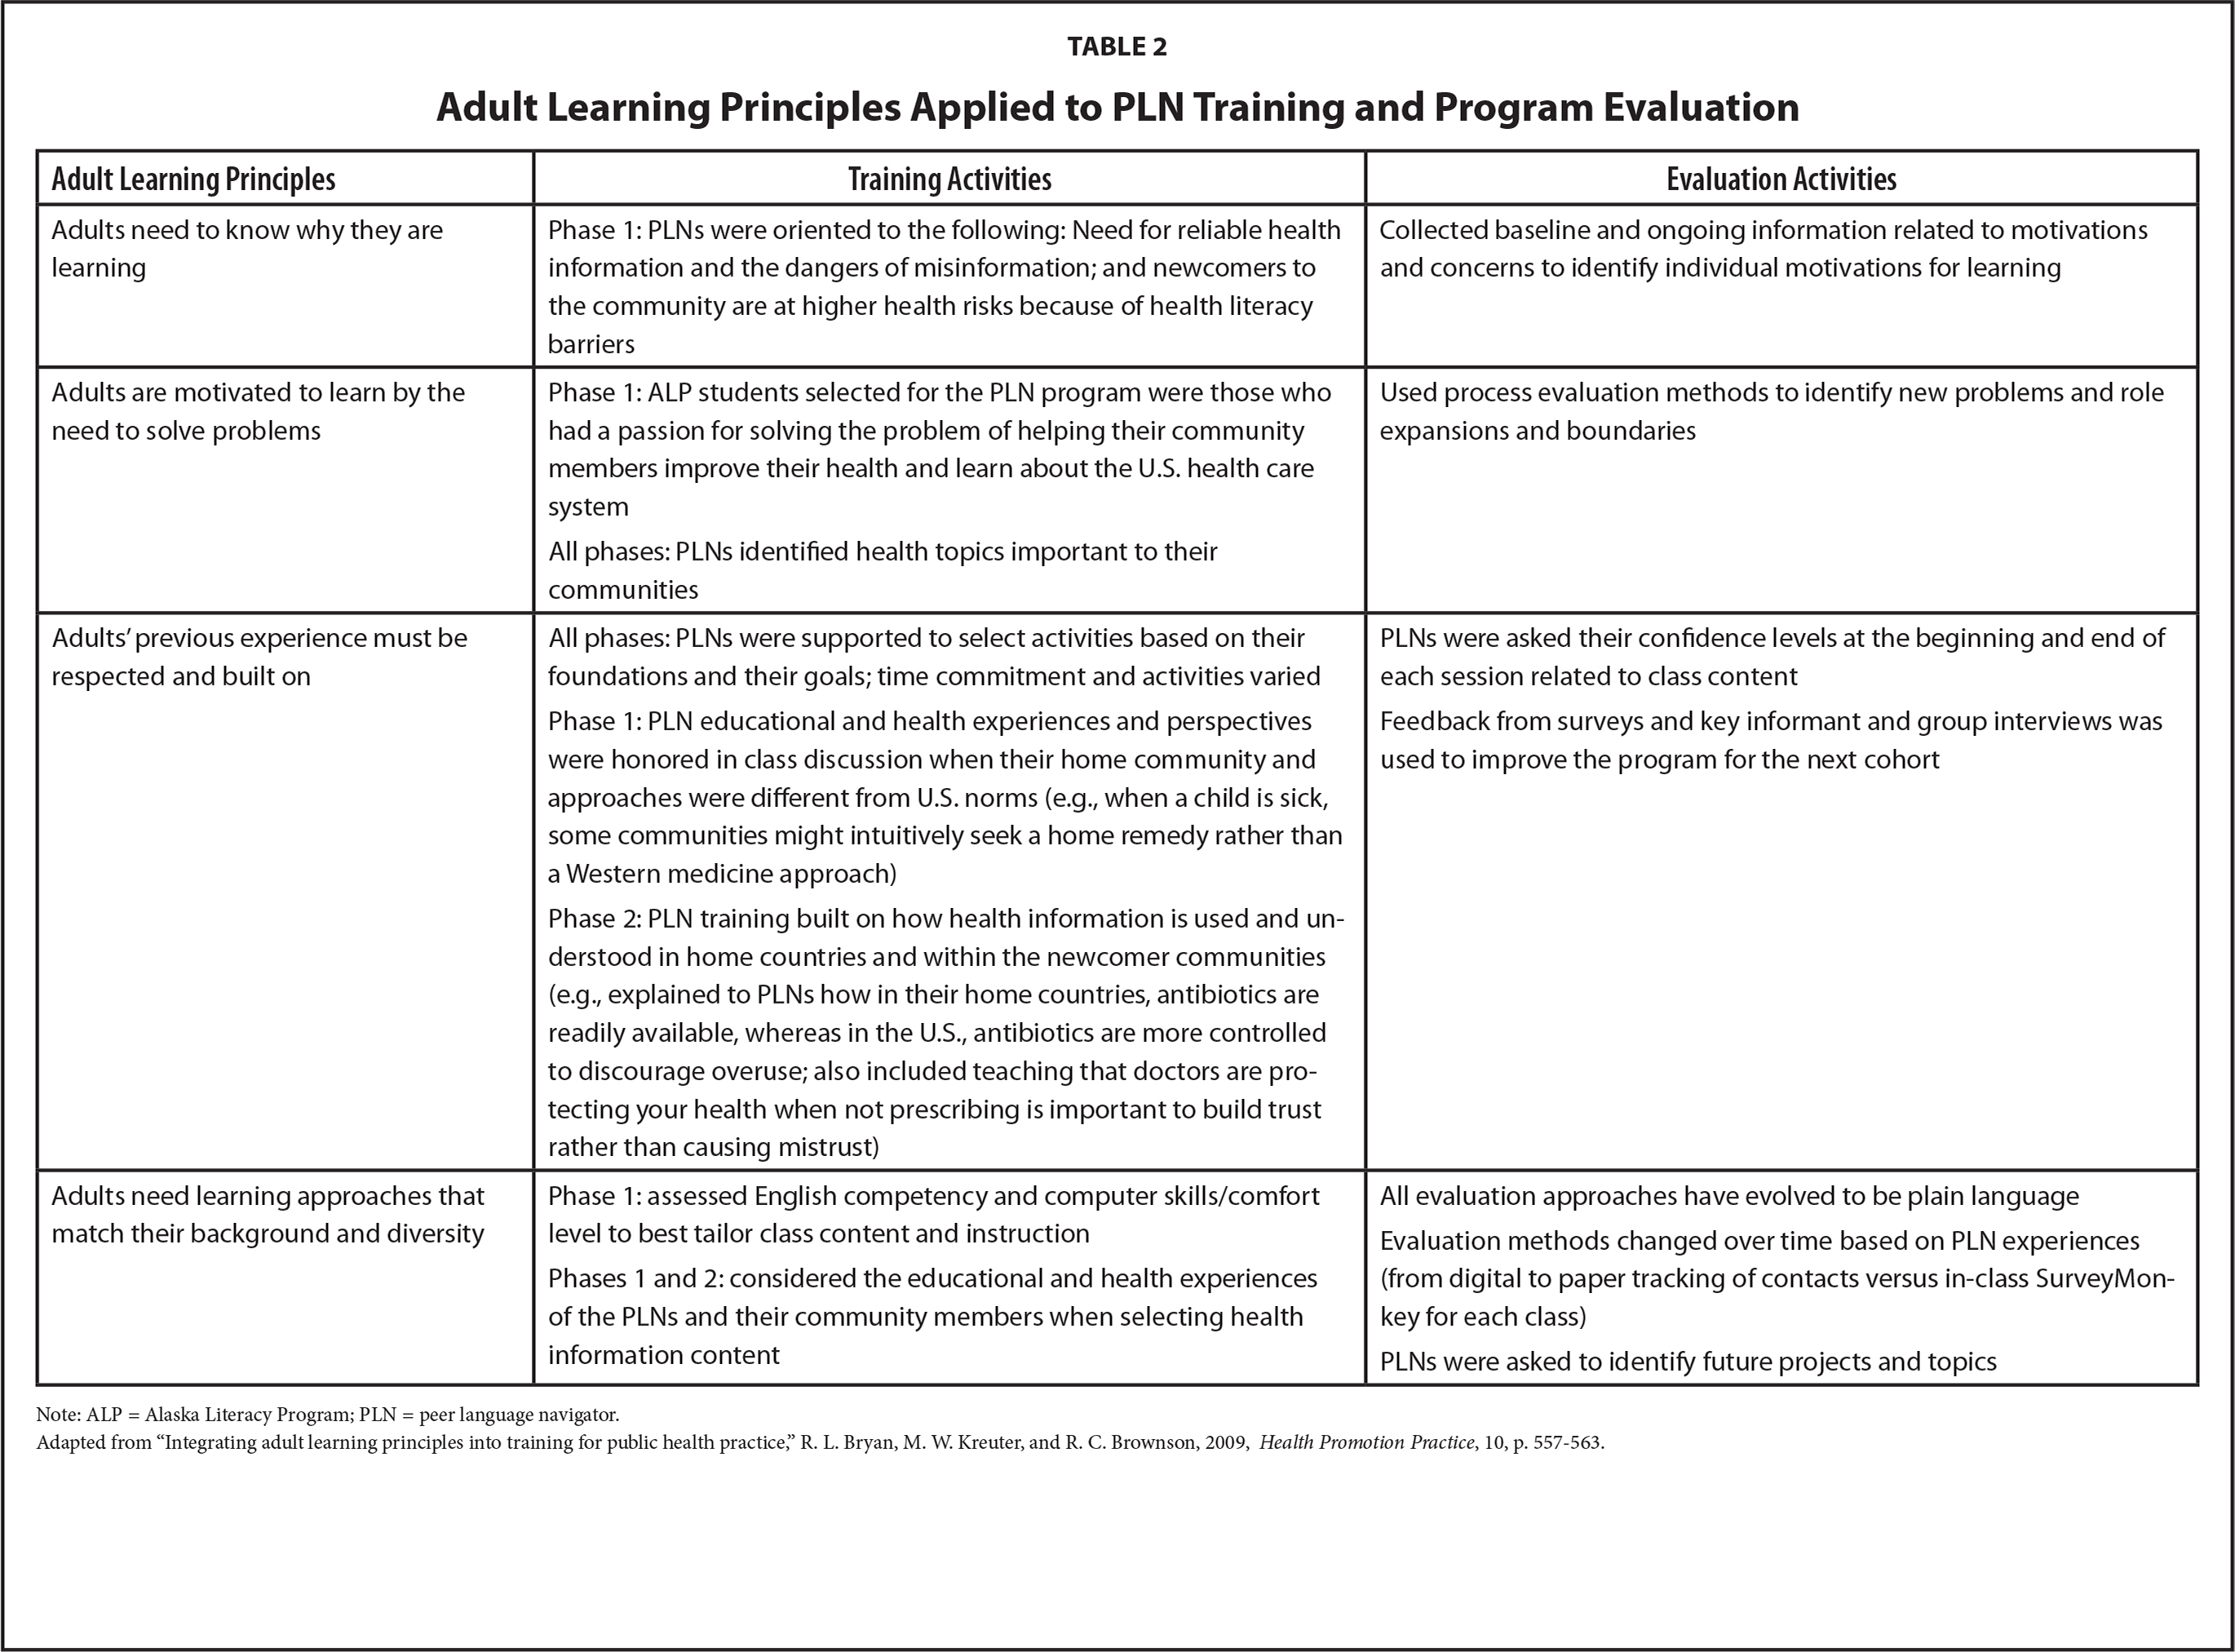 Adult Learning Principles Applied to PLN Training and Program Evaluation